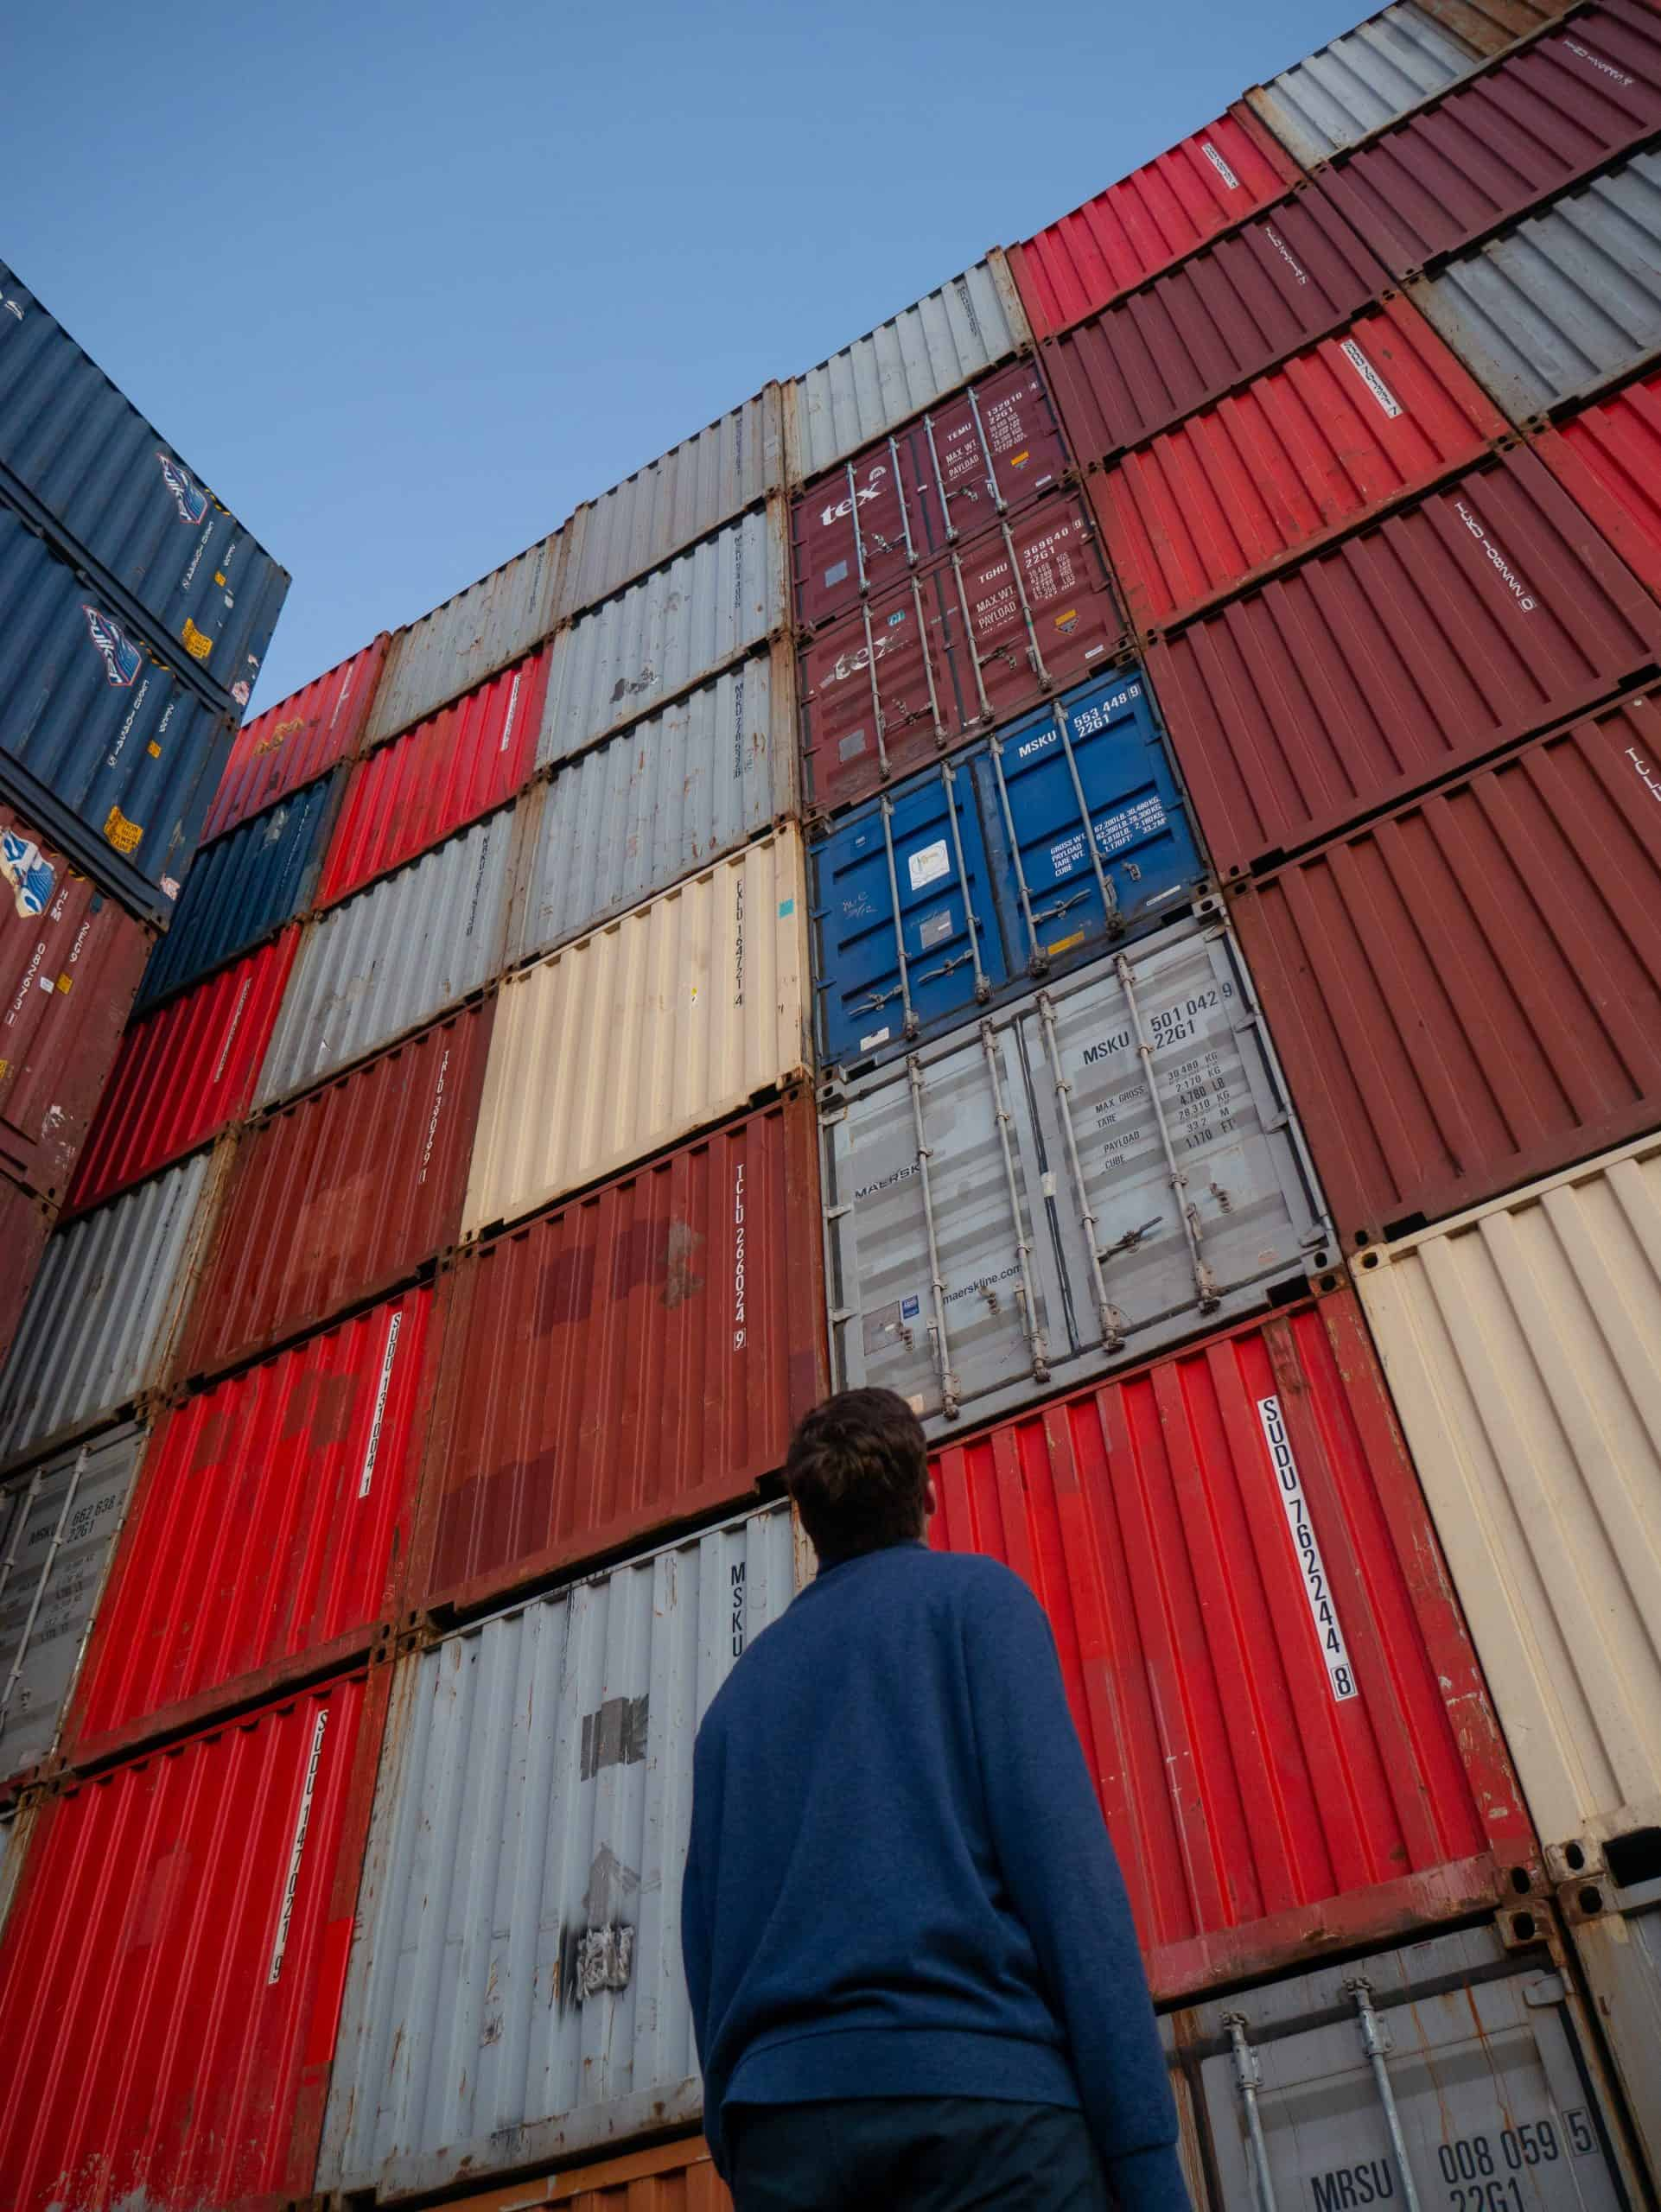 Man Looking Up at Shipping Containers